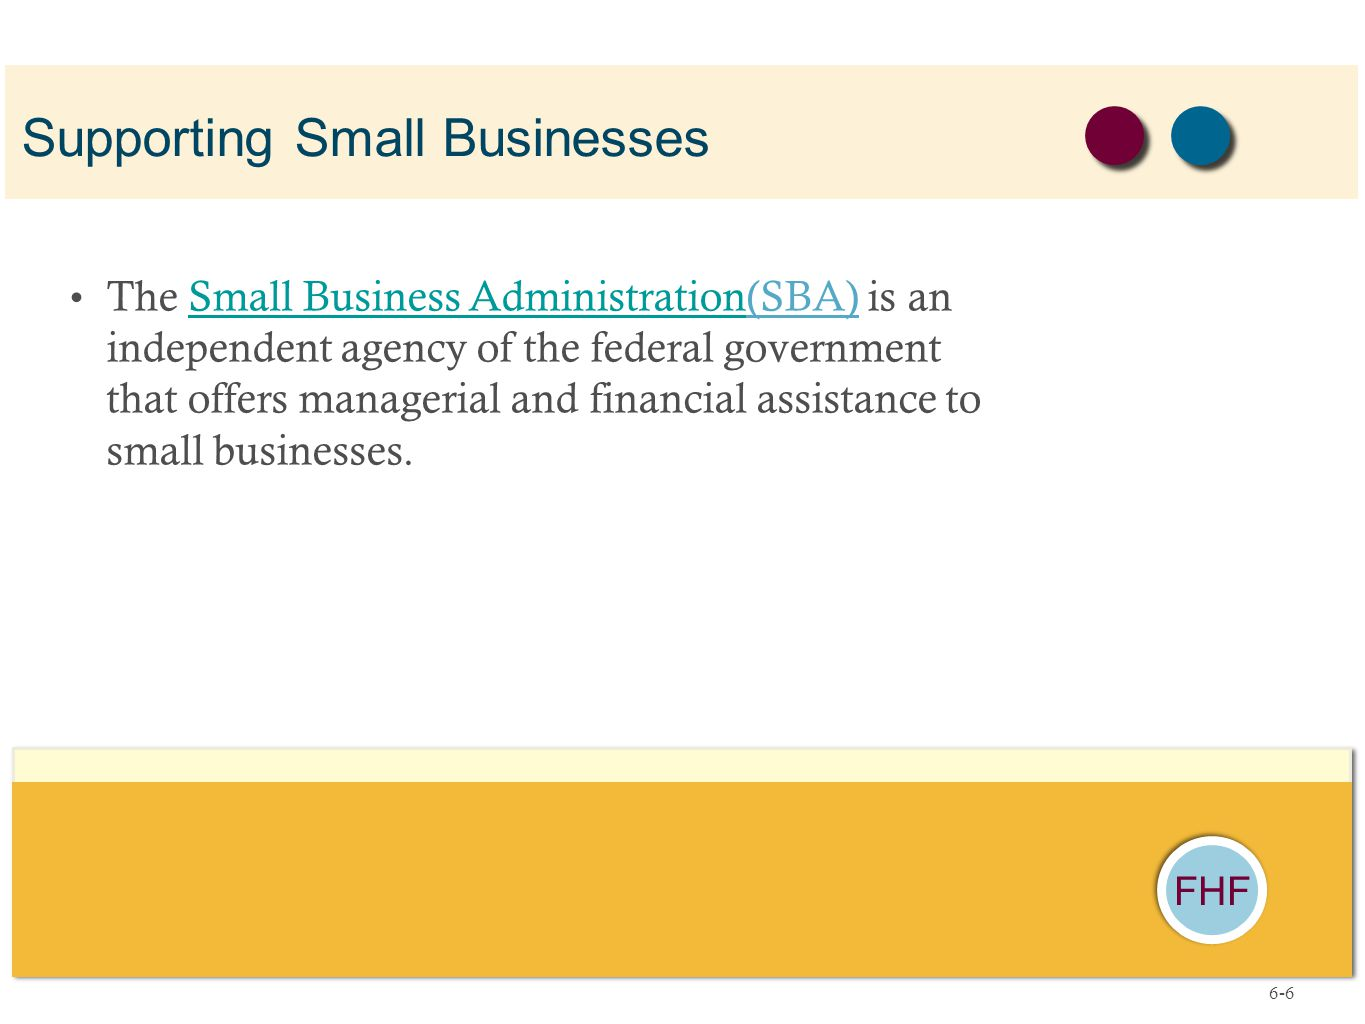 FHF The Small Business Administration(SBA) is an independent agency of the federal government that offers managerial and financial assistance to small businesses.Small Business Administration Supporting Small Businesses 6-6